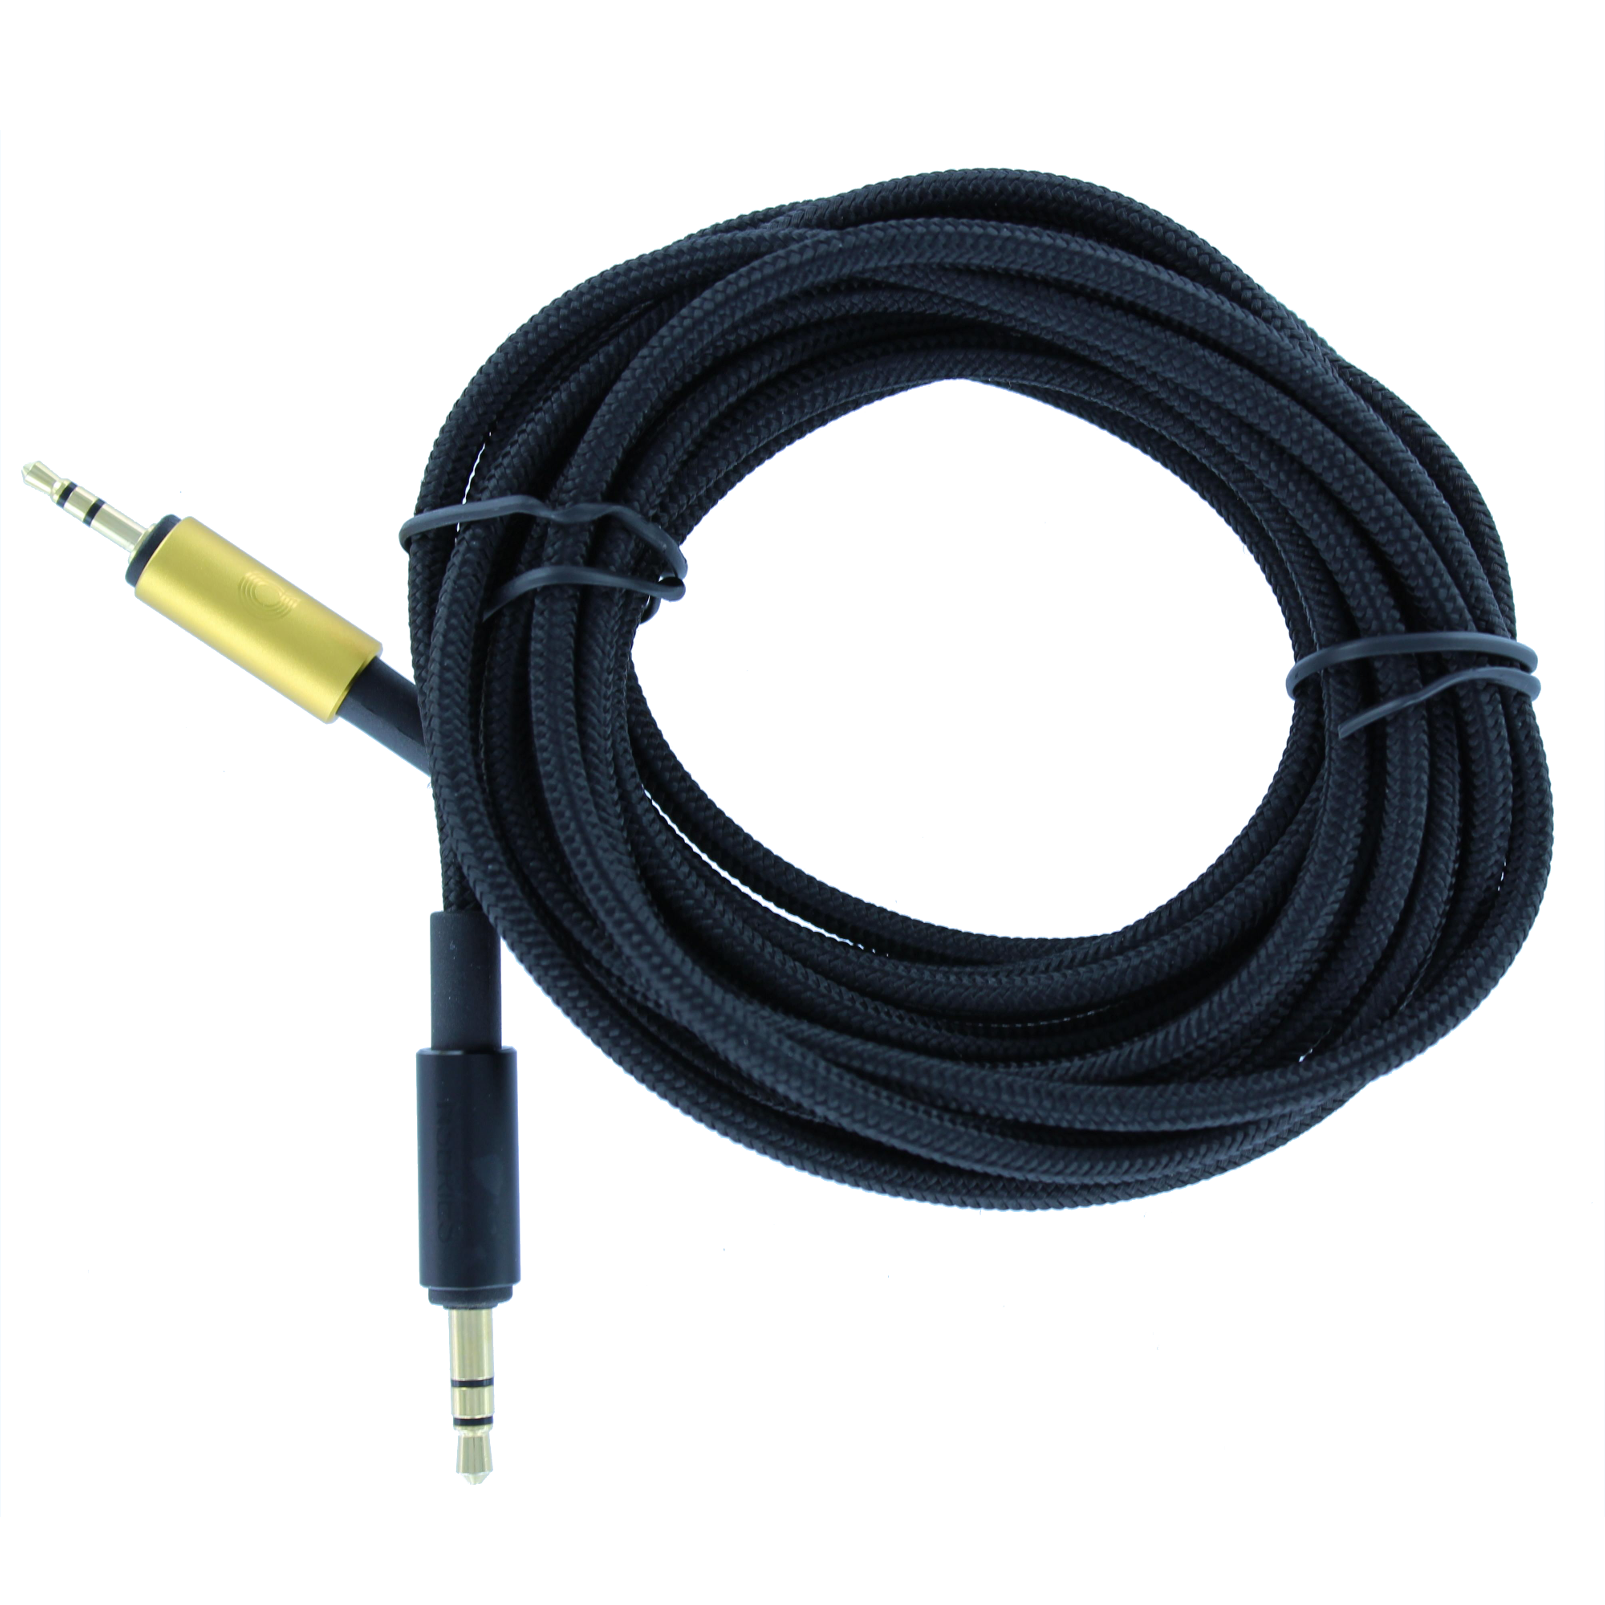 Cable straight, 300cm, AKG N90 - Black - Audio cable 300 cm - Hero